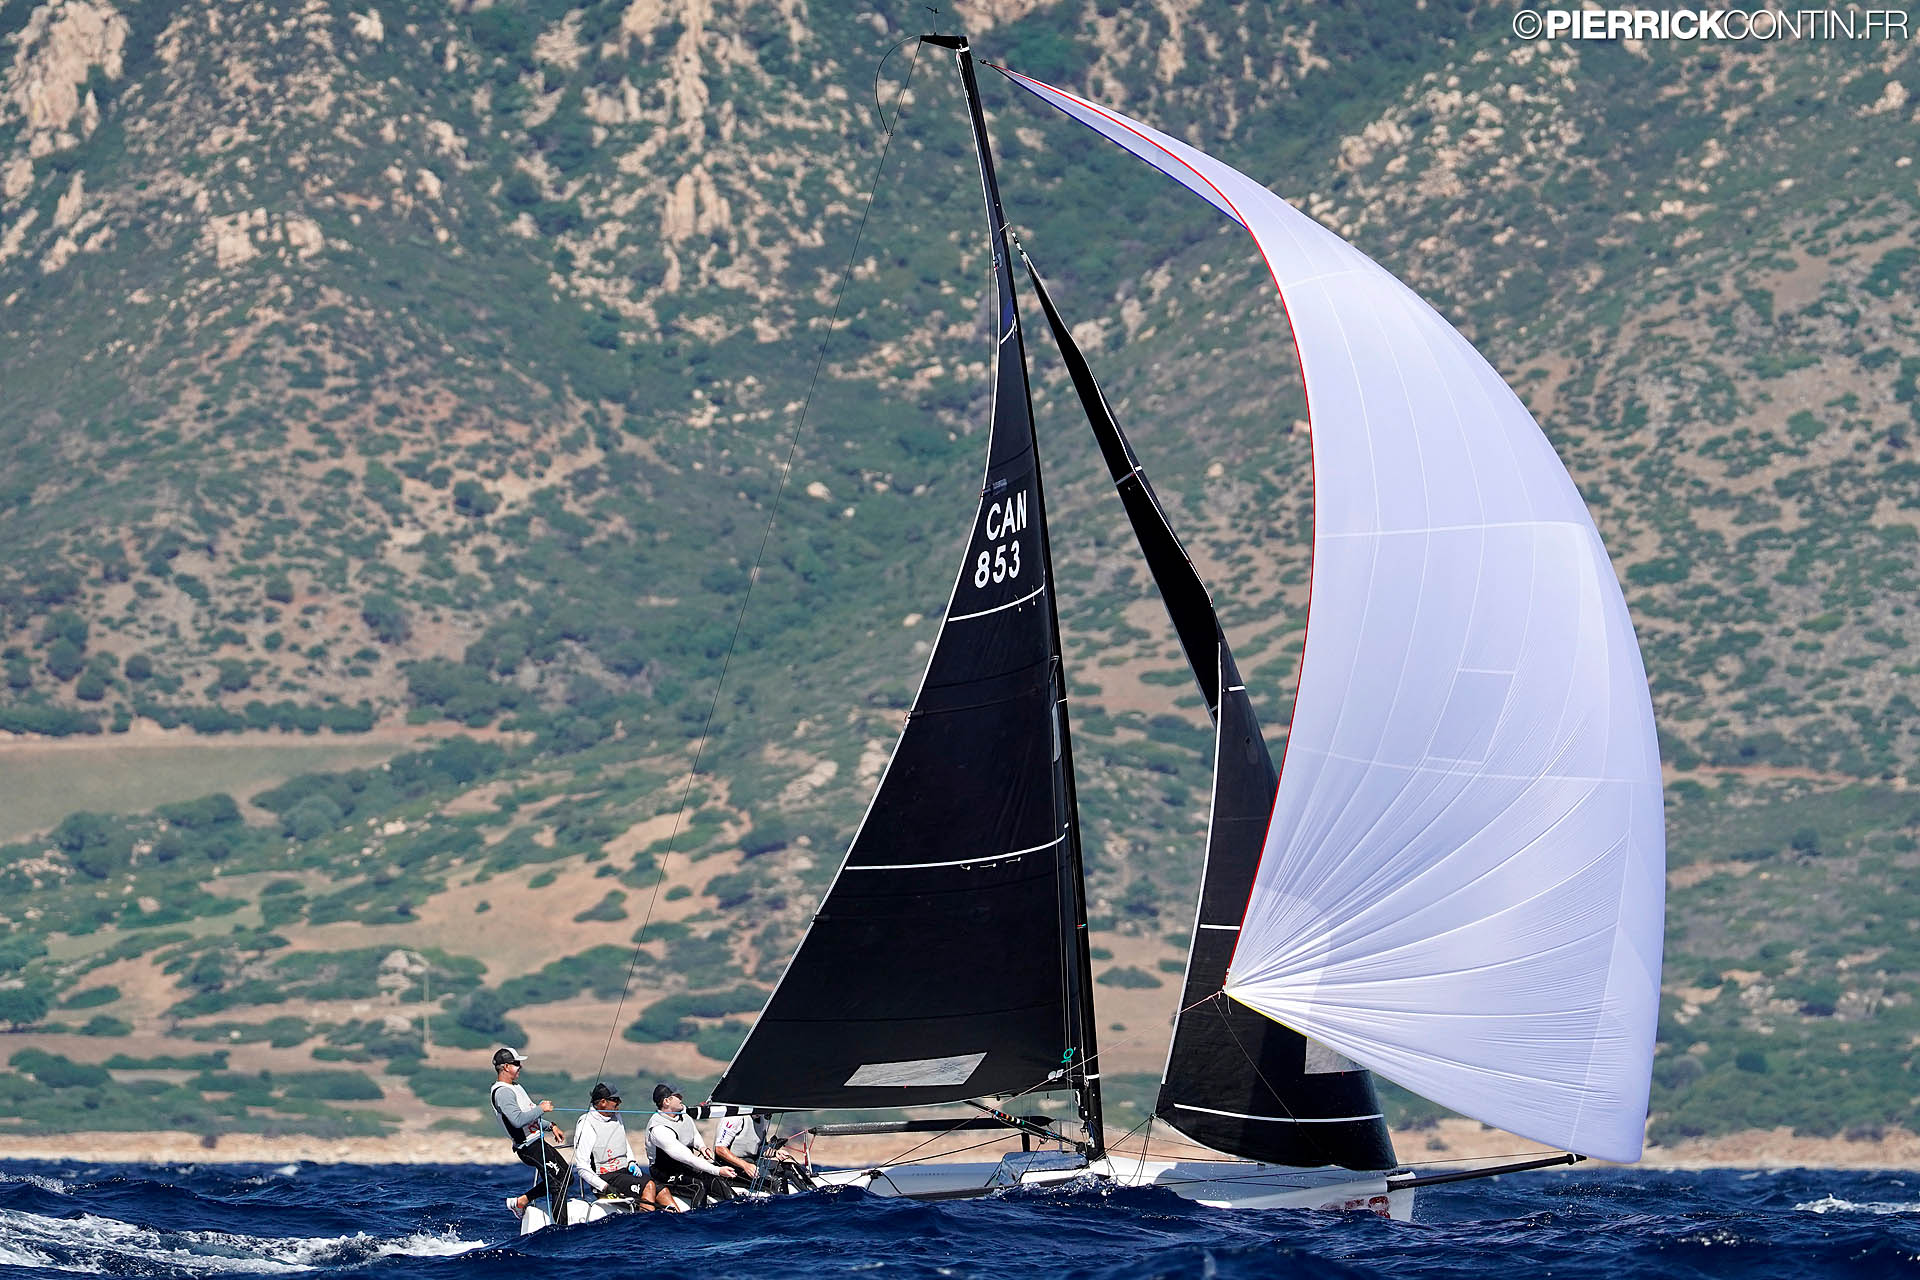 CAN-853 Zinfara at 2019 Melges 24 World Championship